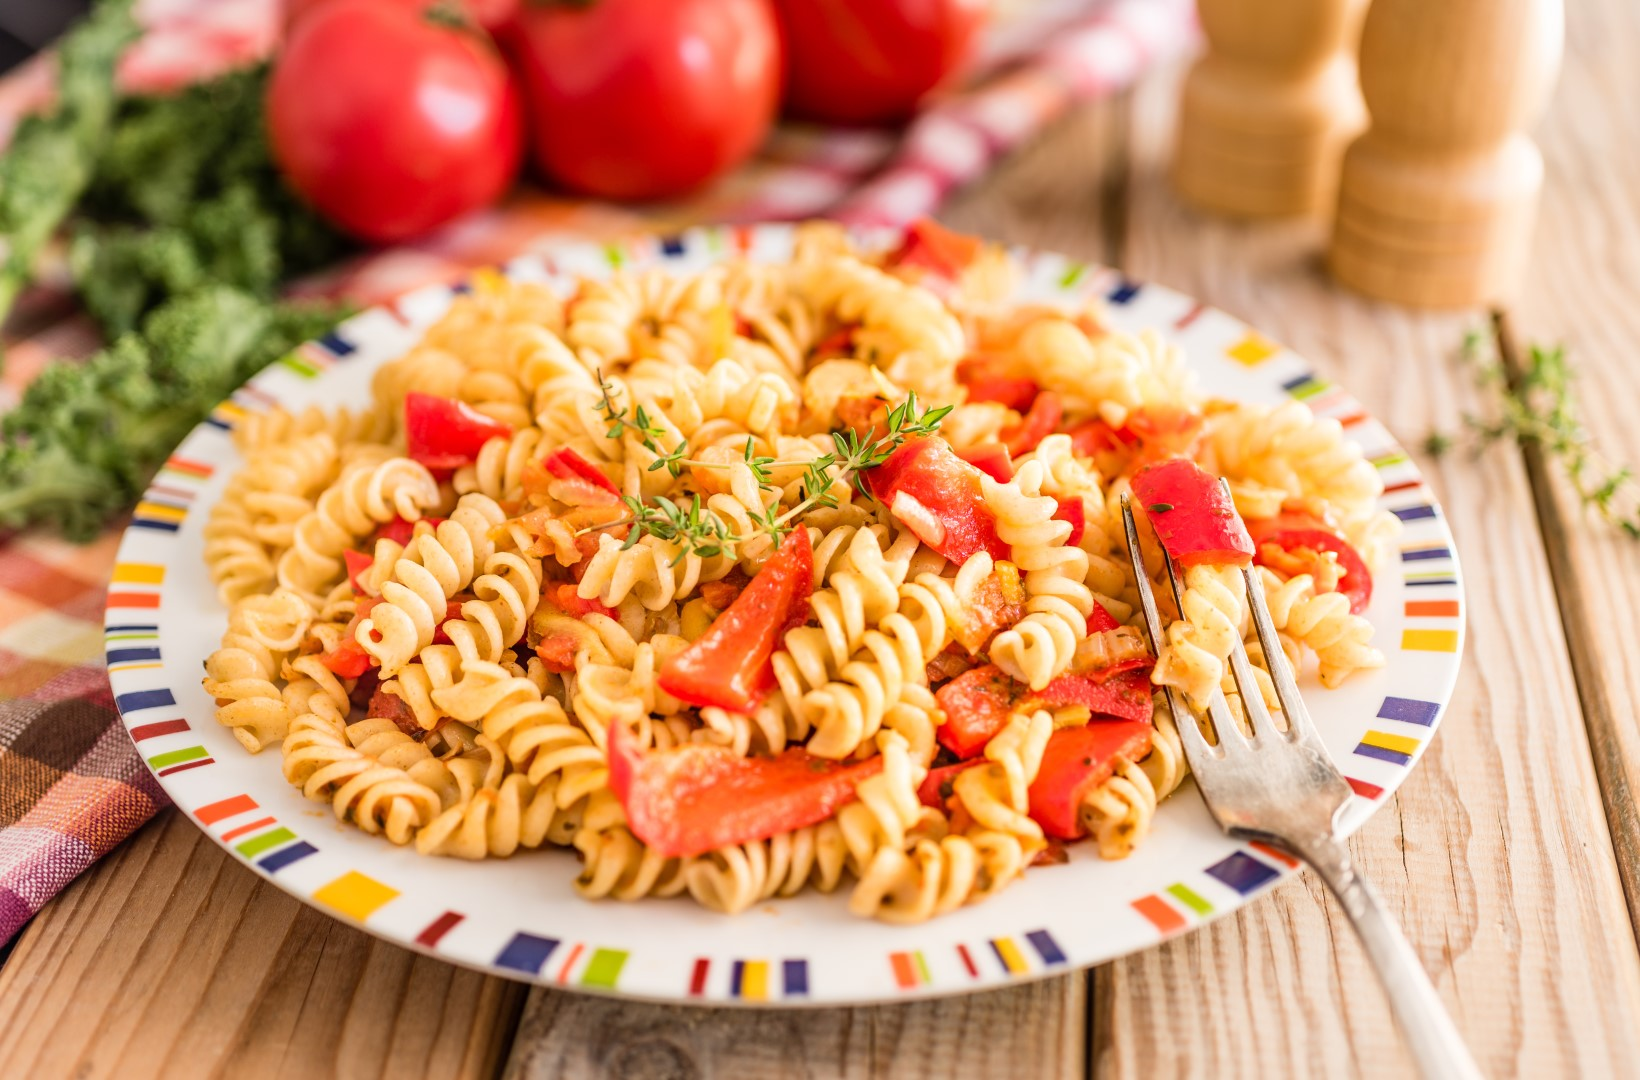 Simple meals - Fusilli with tomatoes and peppers